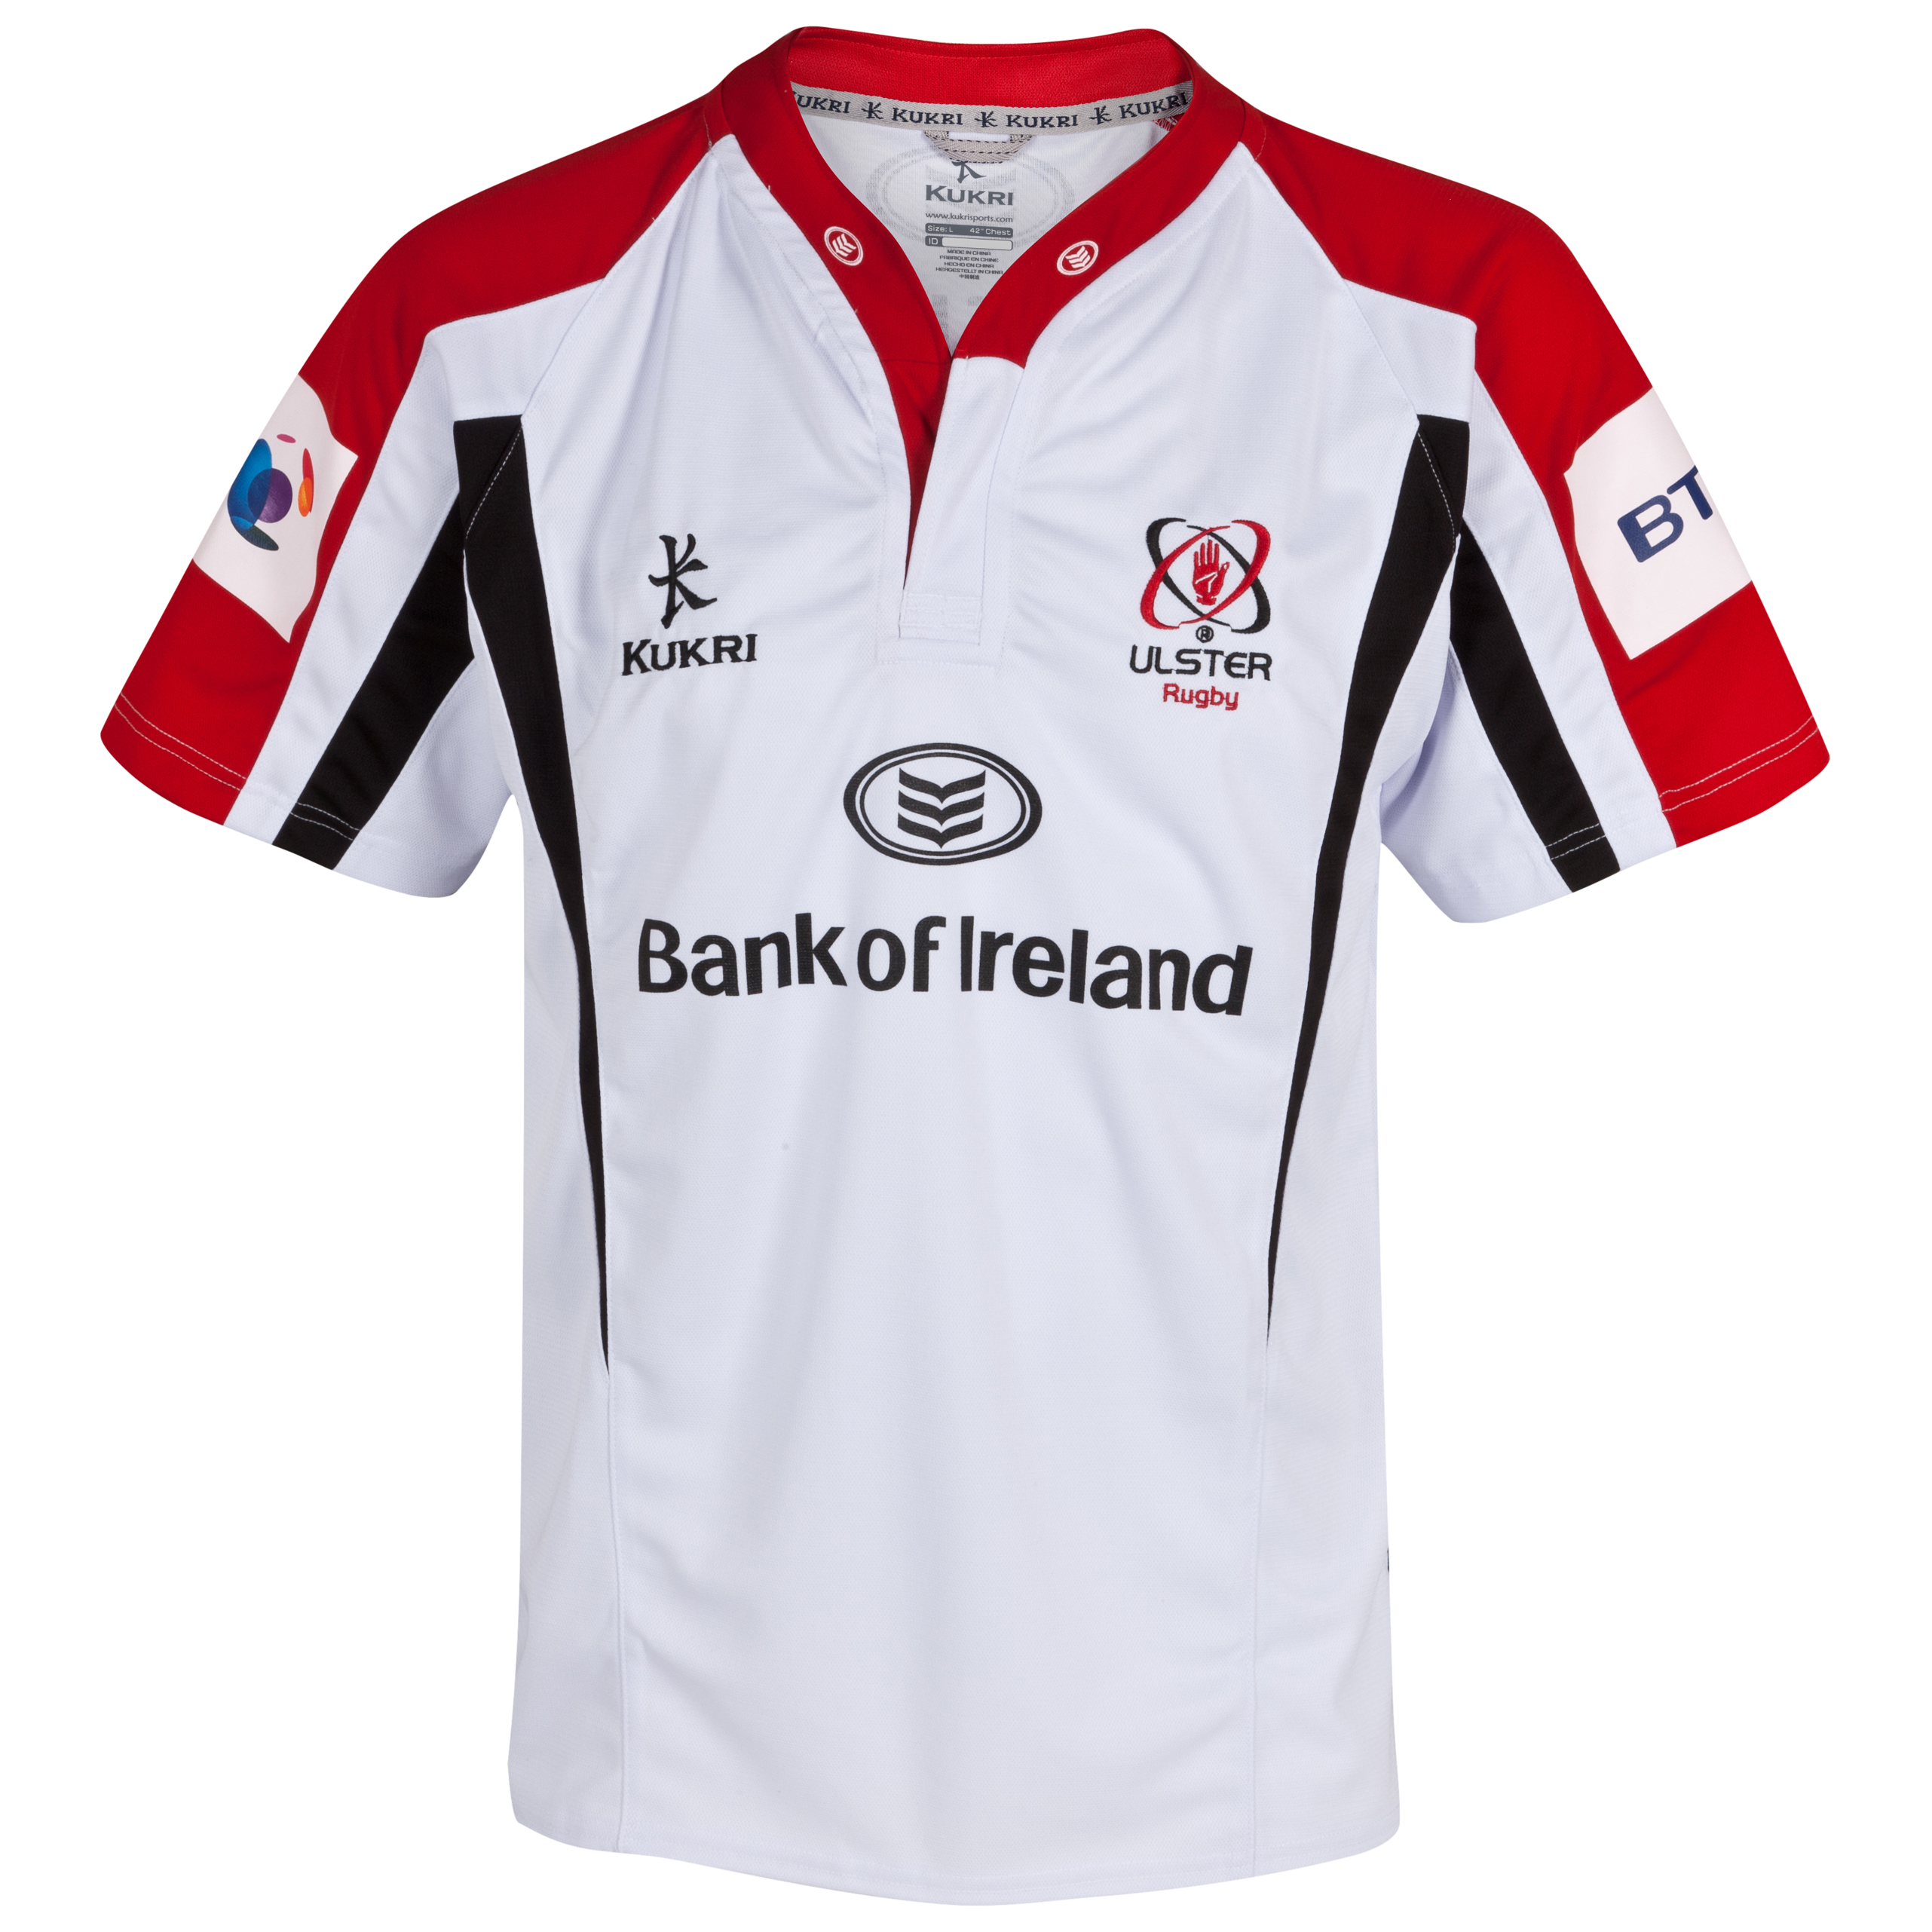 Ulster Home Shirt 2012/13